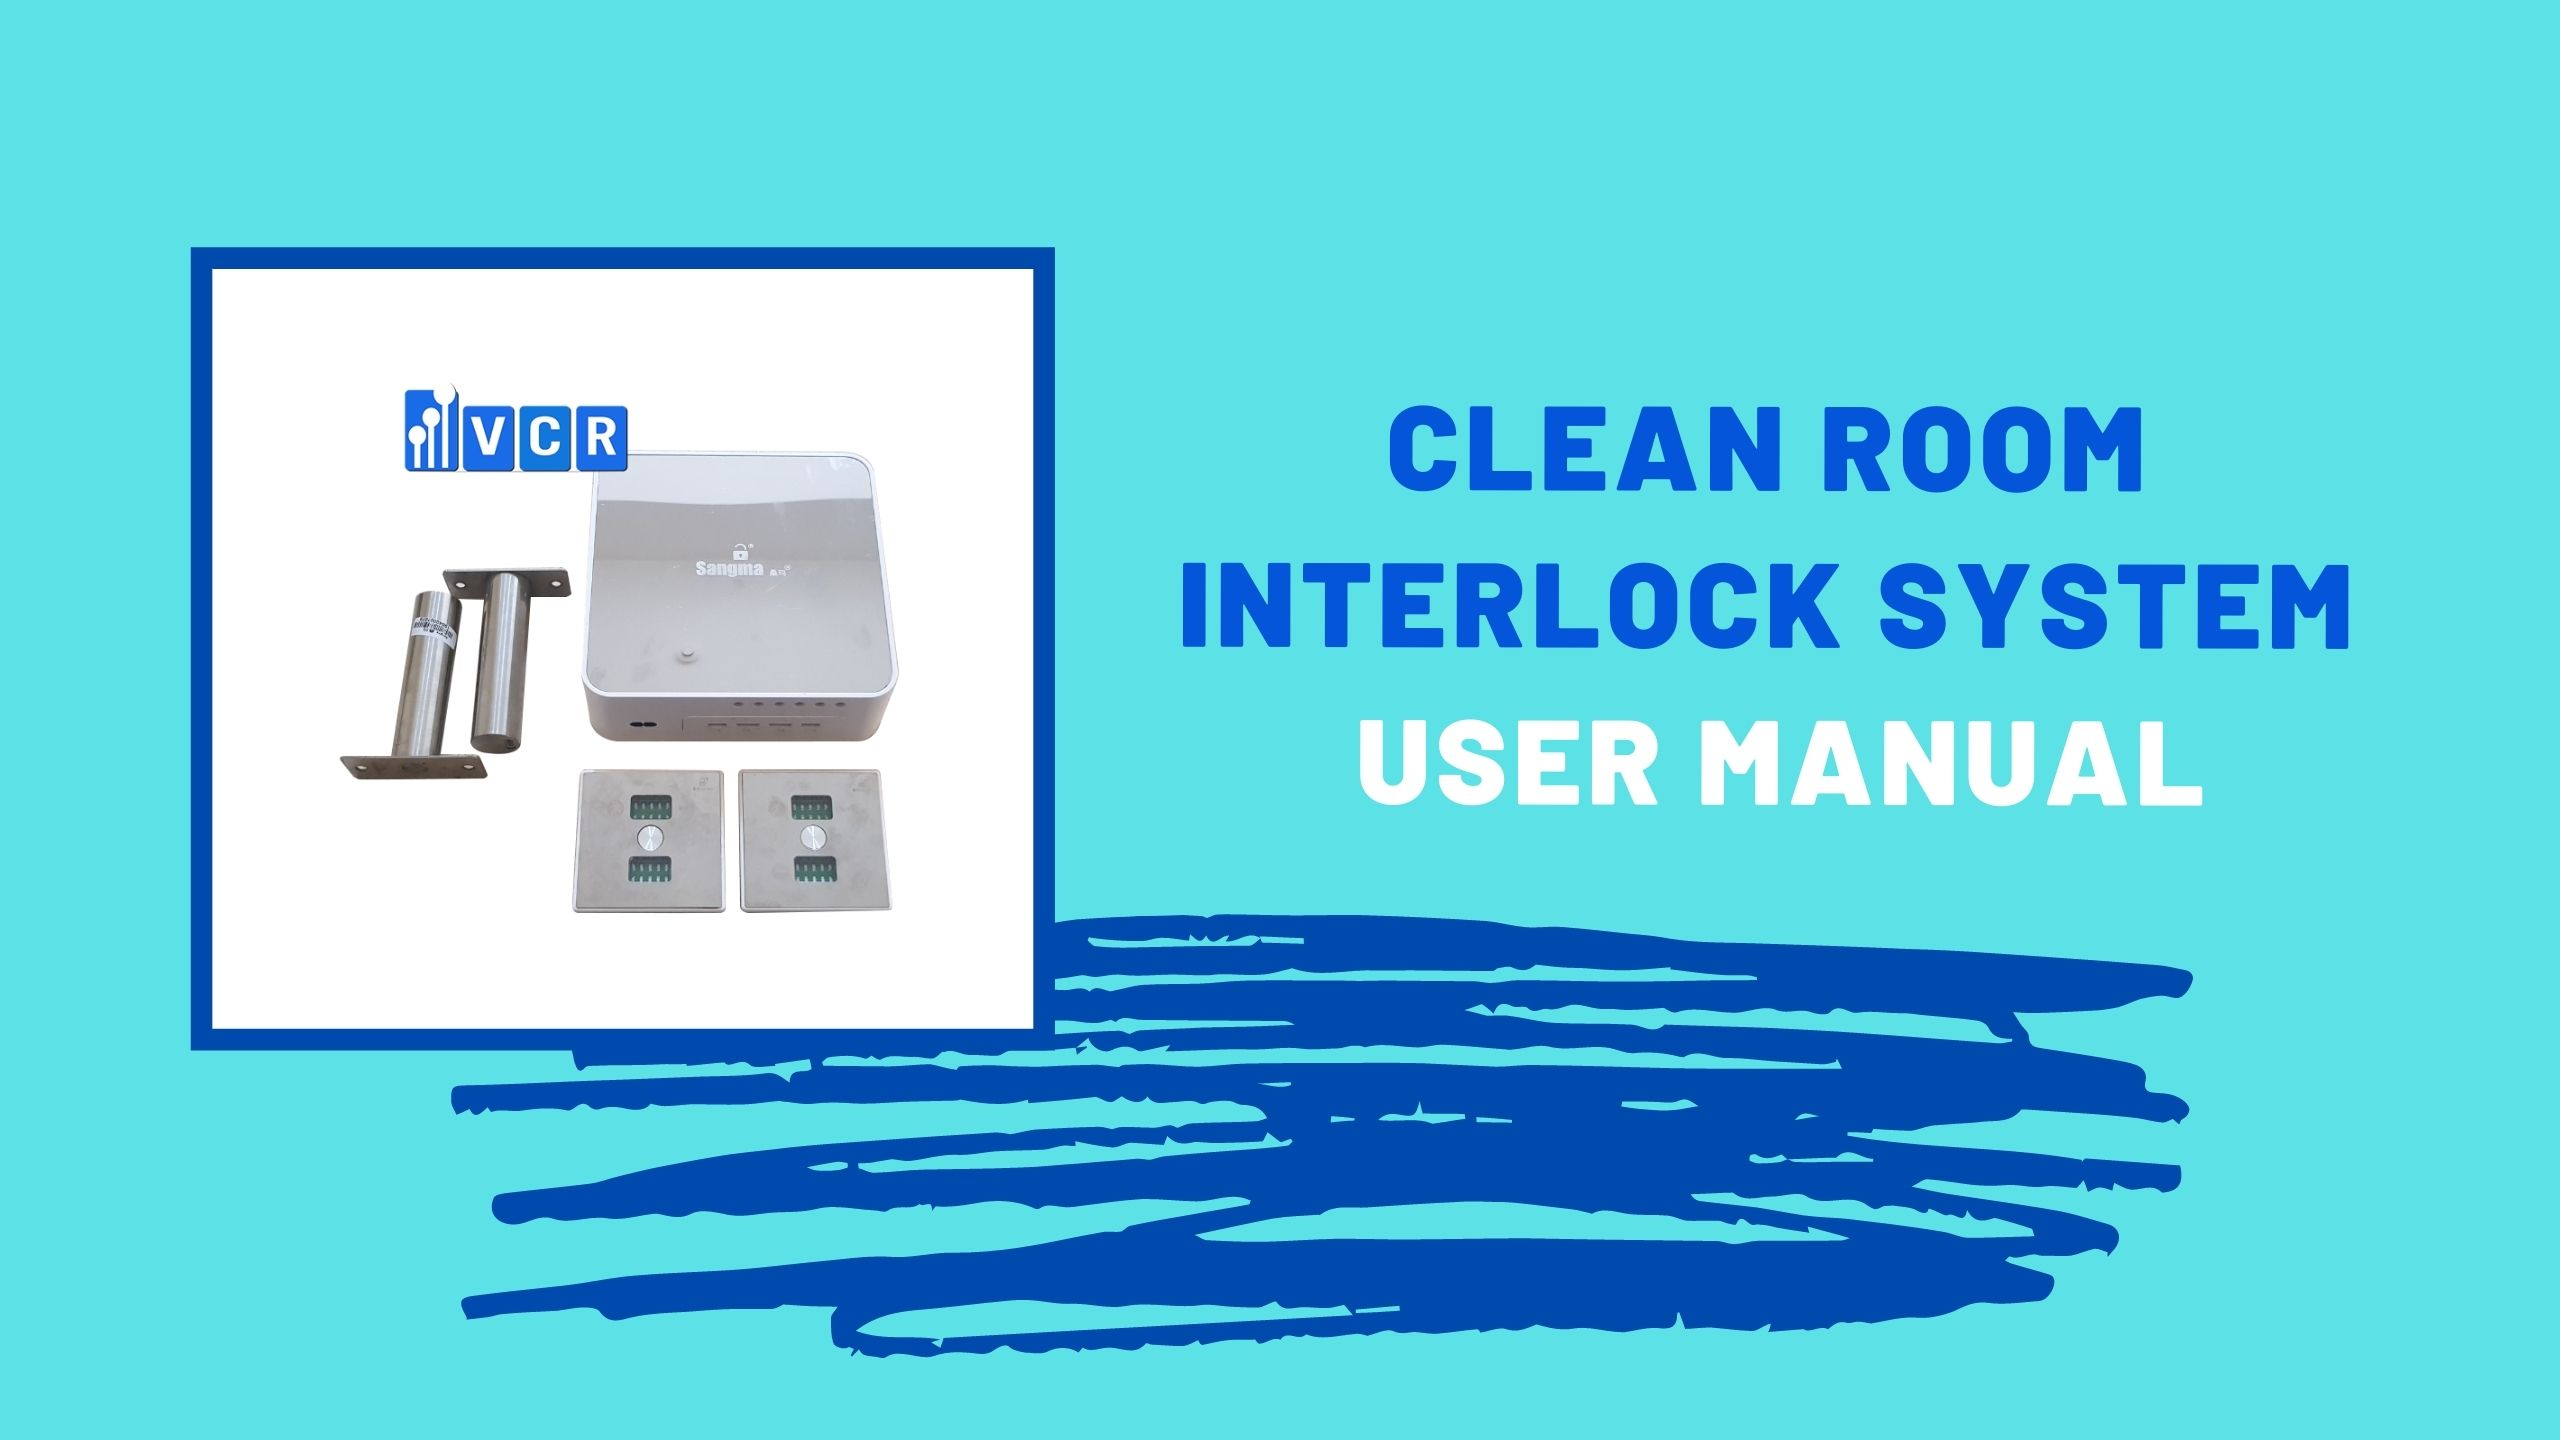 cleanroom door interlocks